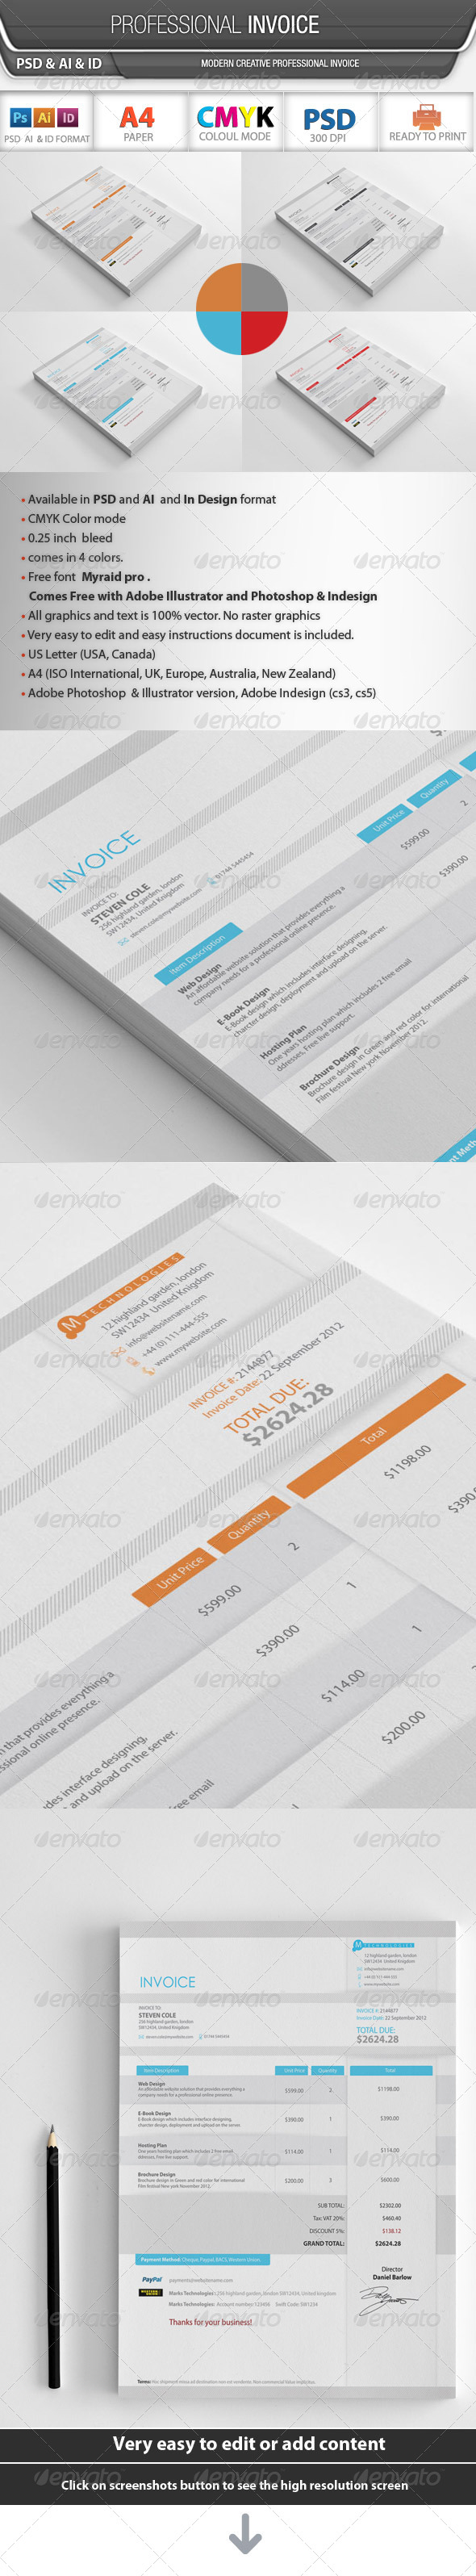 Professional Invoice - Proposals & Invoices Stationery